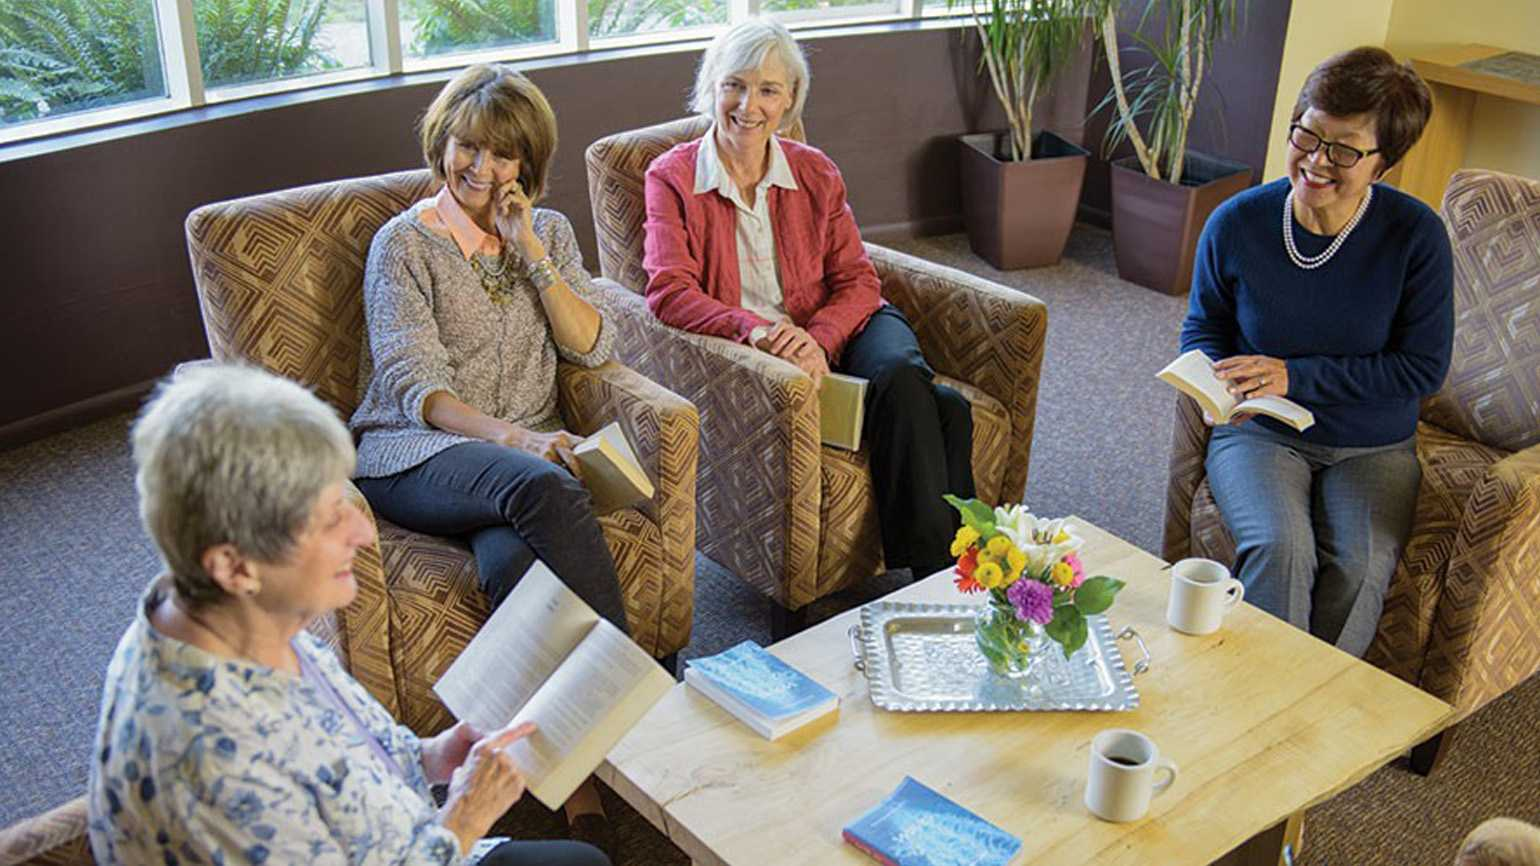 A group of retirees reading together in a circle.